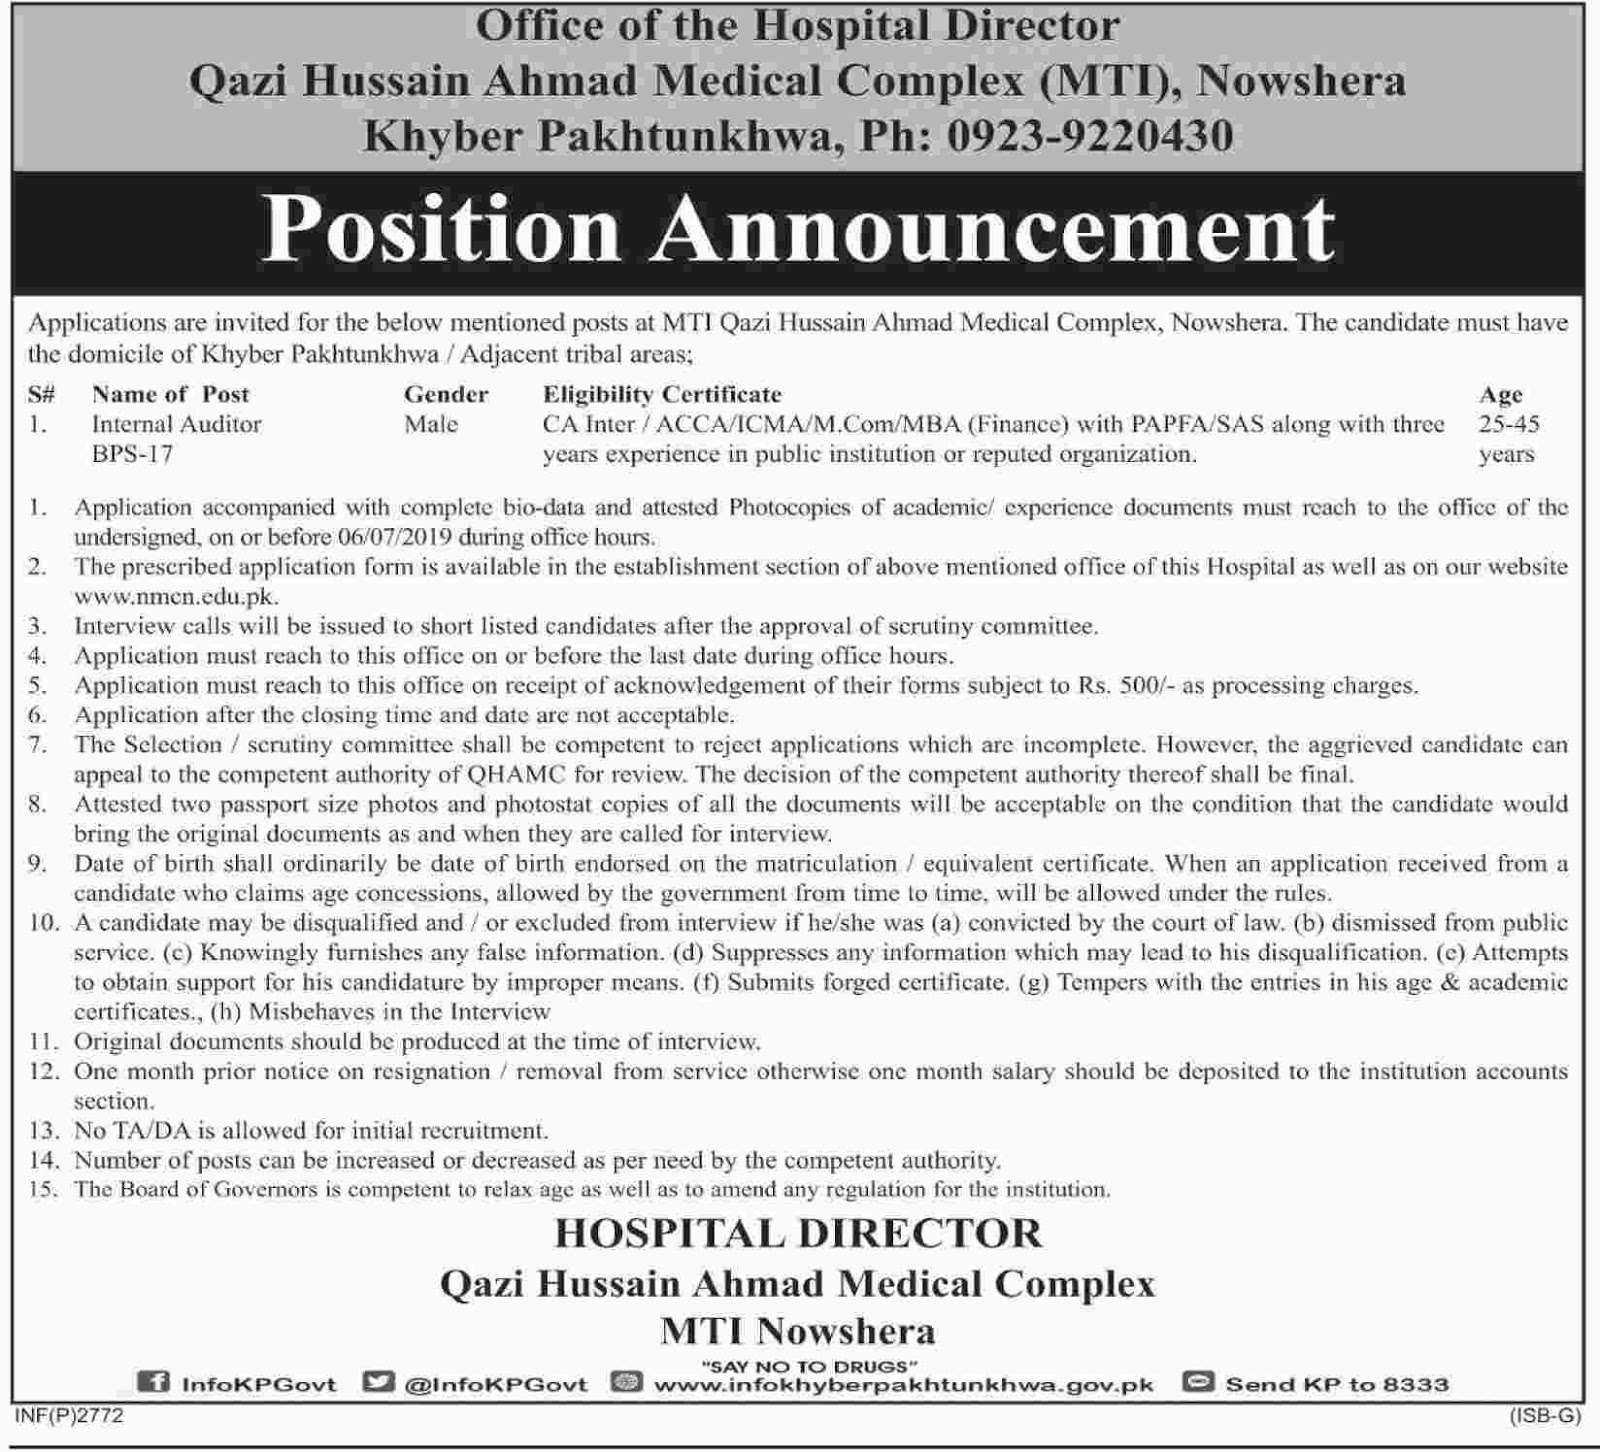 Jobs Opportunistic in Nowshera as Internal Auditor